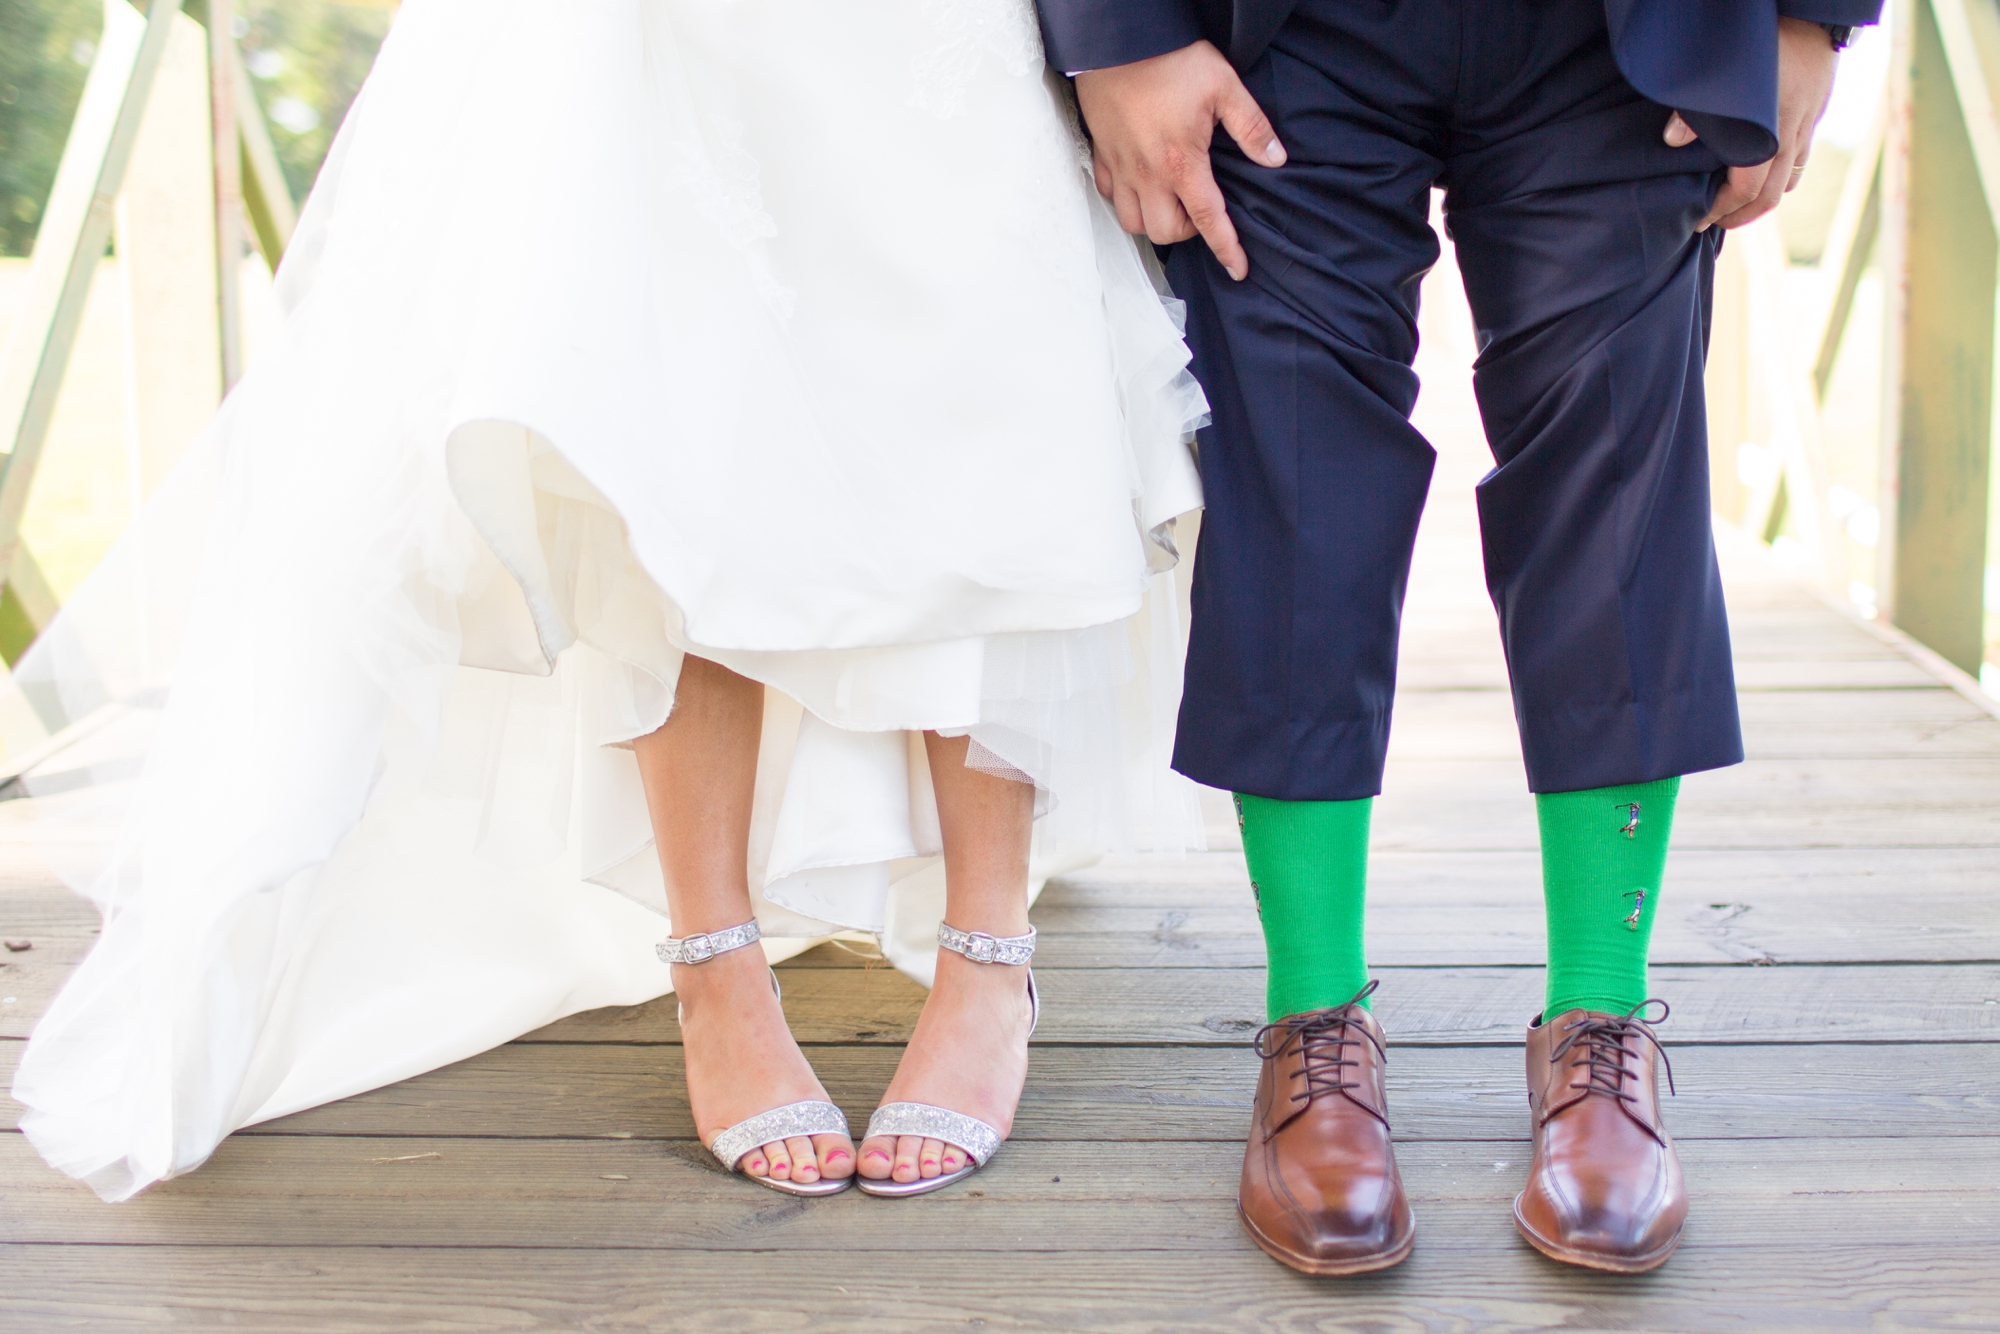 Kevin has golfers on his socks! Perfectly fitting that their reception was at a Golf Club!